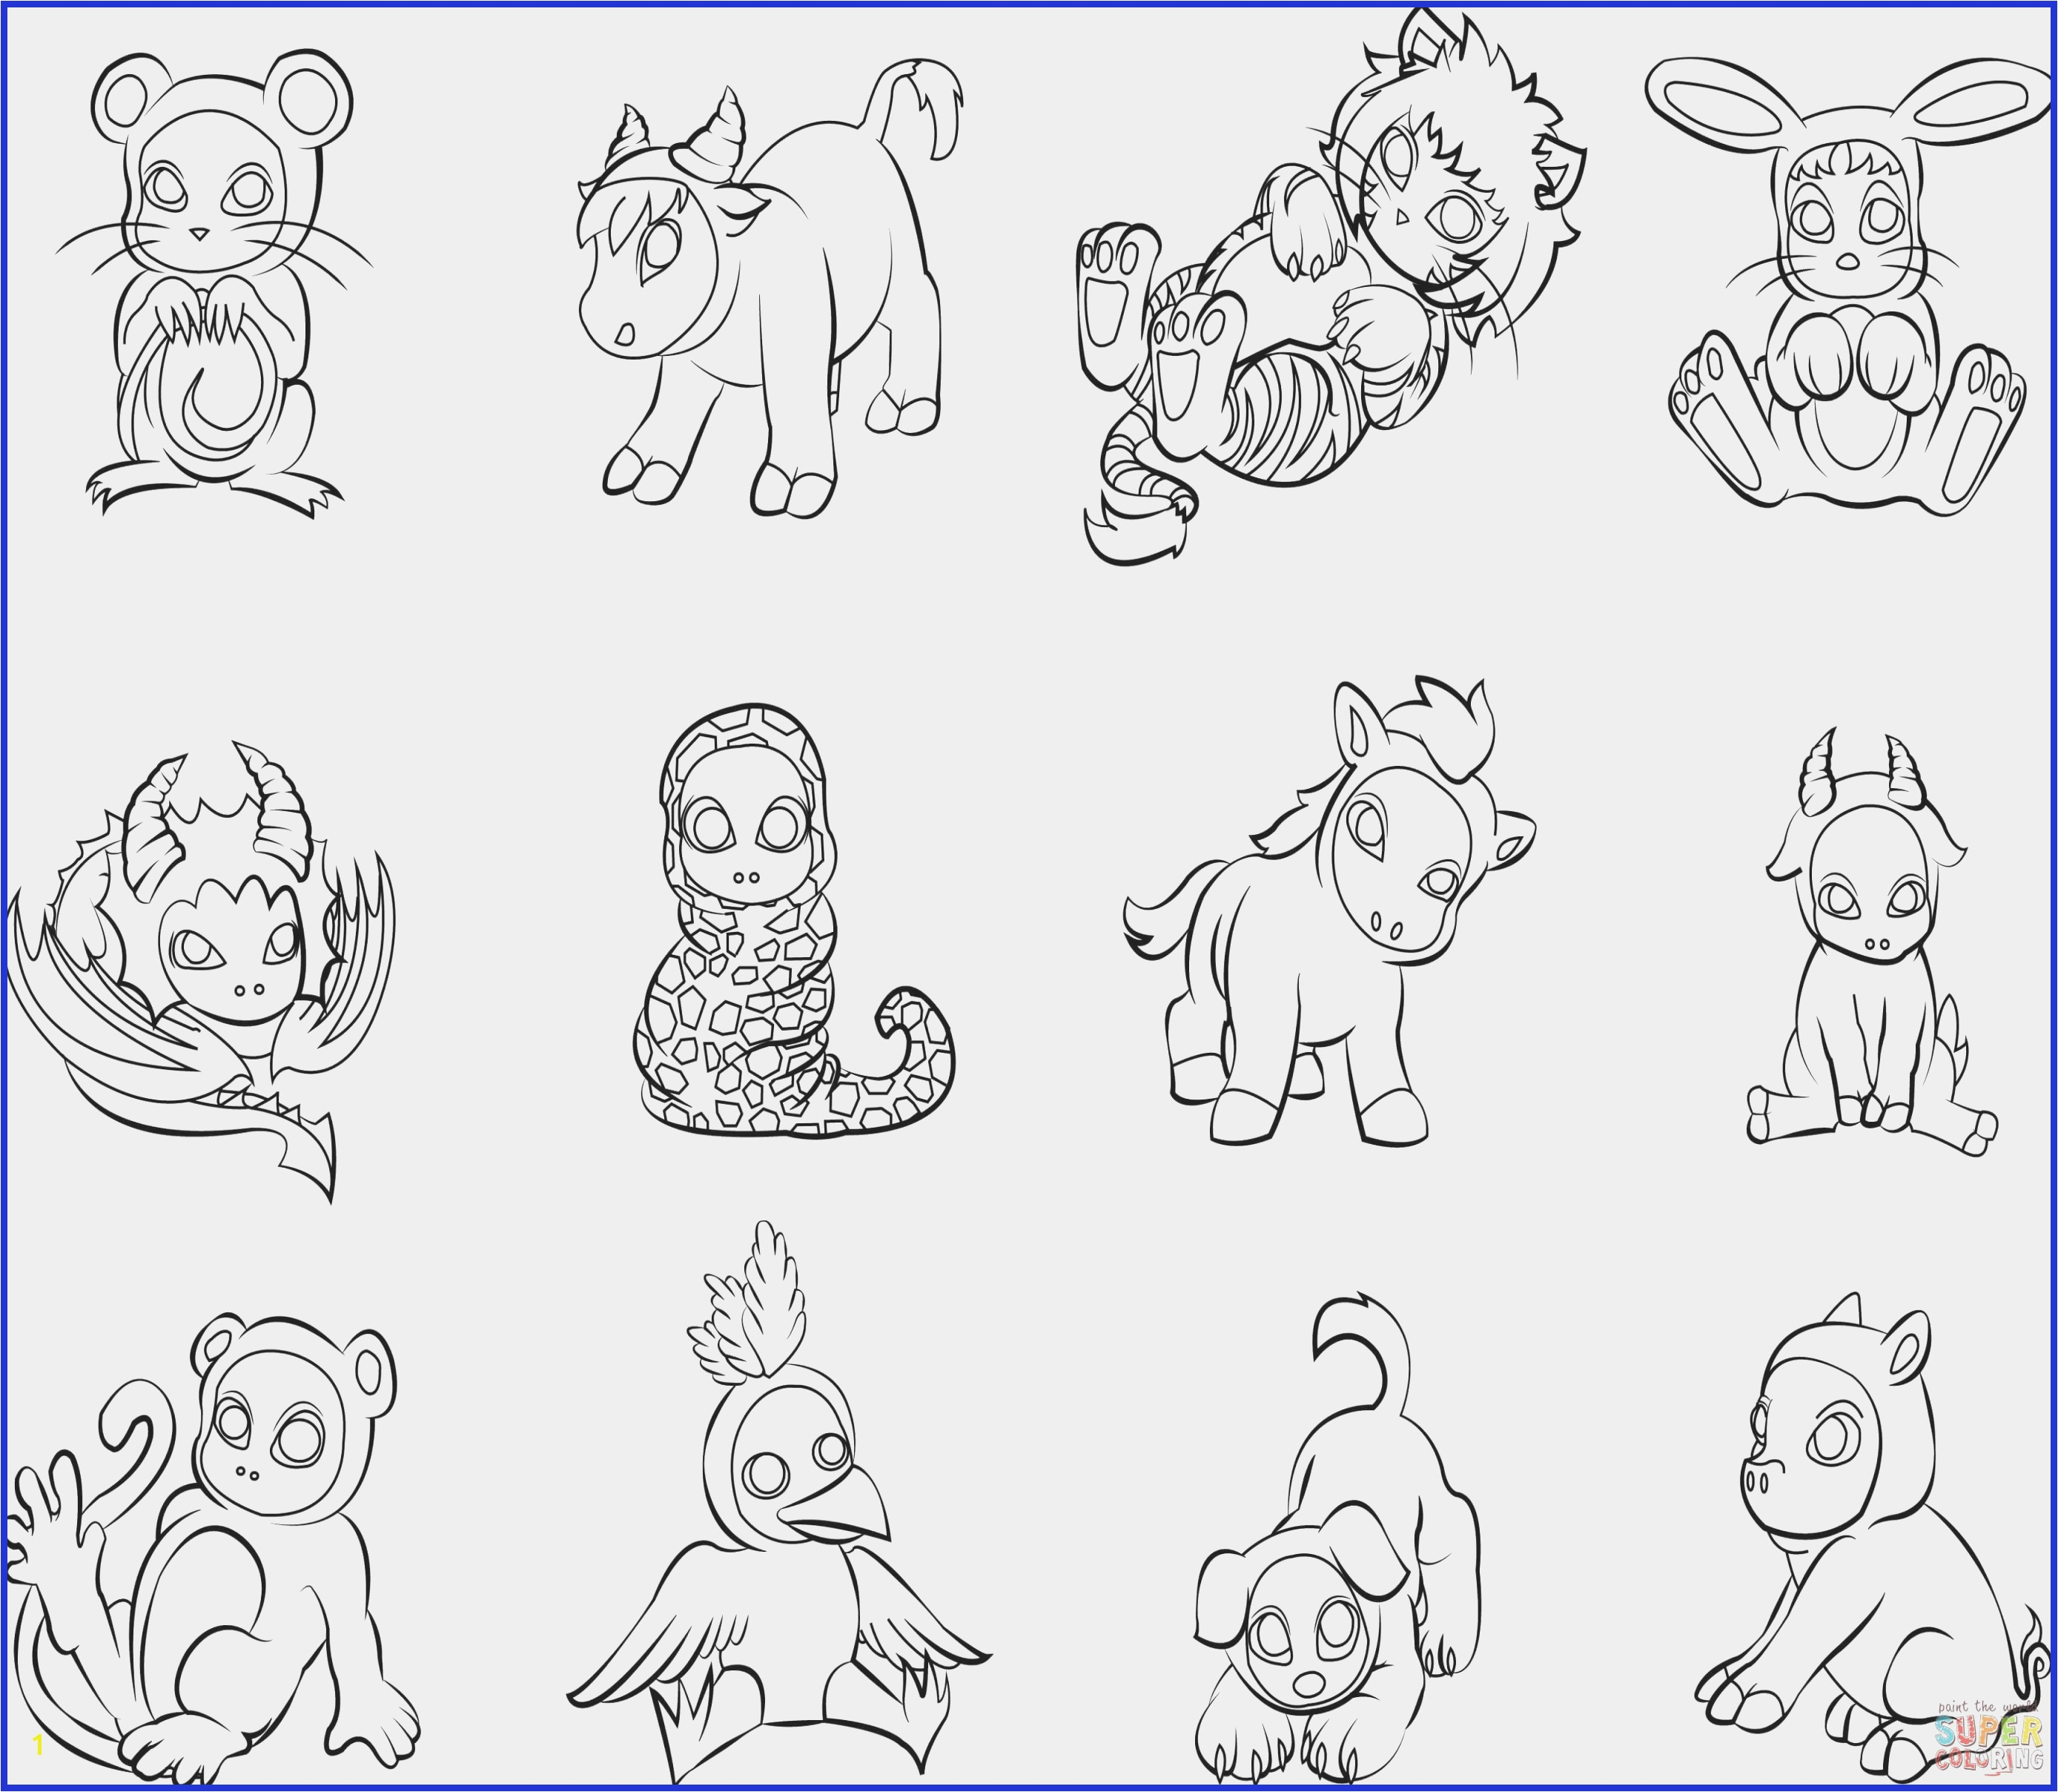 Adorable Baby Animal Coloring Pages Paint Coloring Pages Best Cute Baby Animal Coloring Pages Elegant